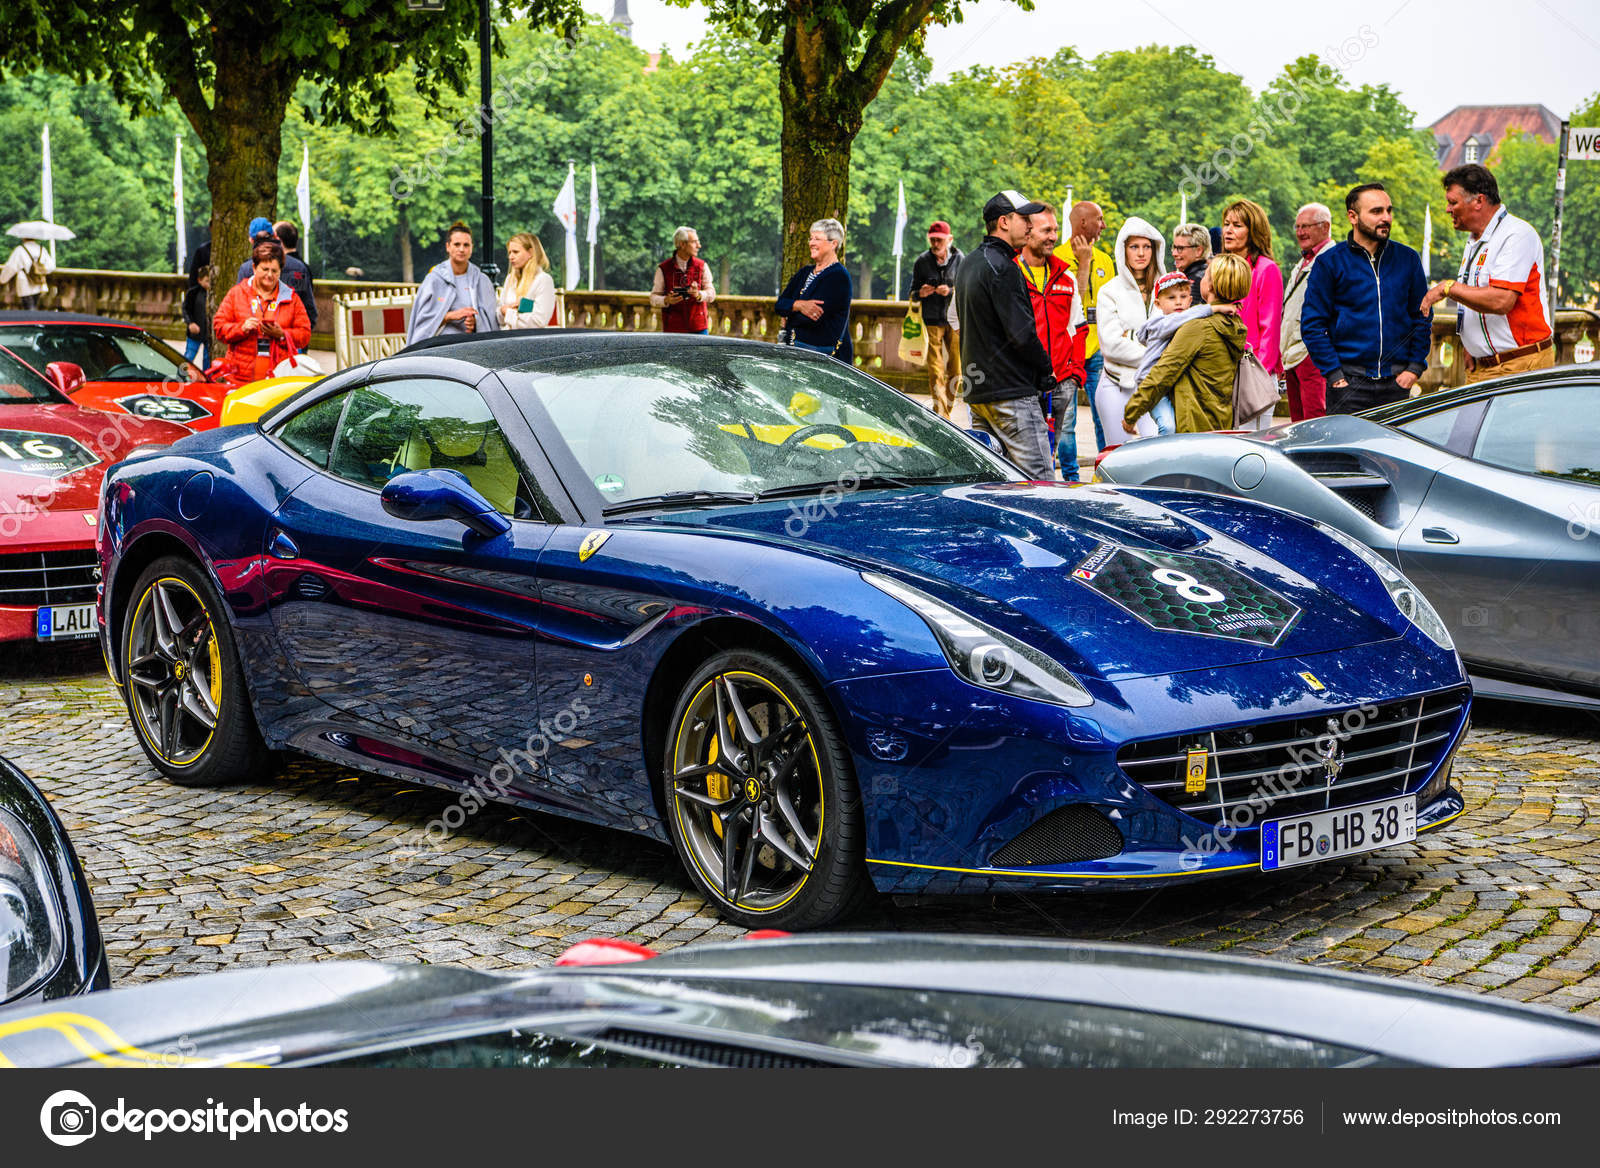 Germany Fulda Jul 2019 Dark Blue Ferrari California Type F149 Coupe Is A Grand Touring Sports Car Produced By The Italian Automotive Manufacturer Ferrari It Is A Two Door Hard Top Convertible